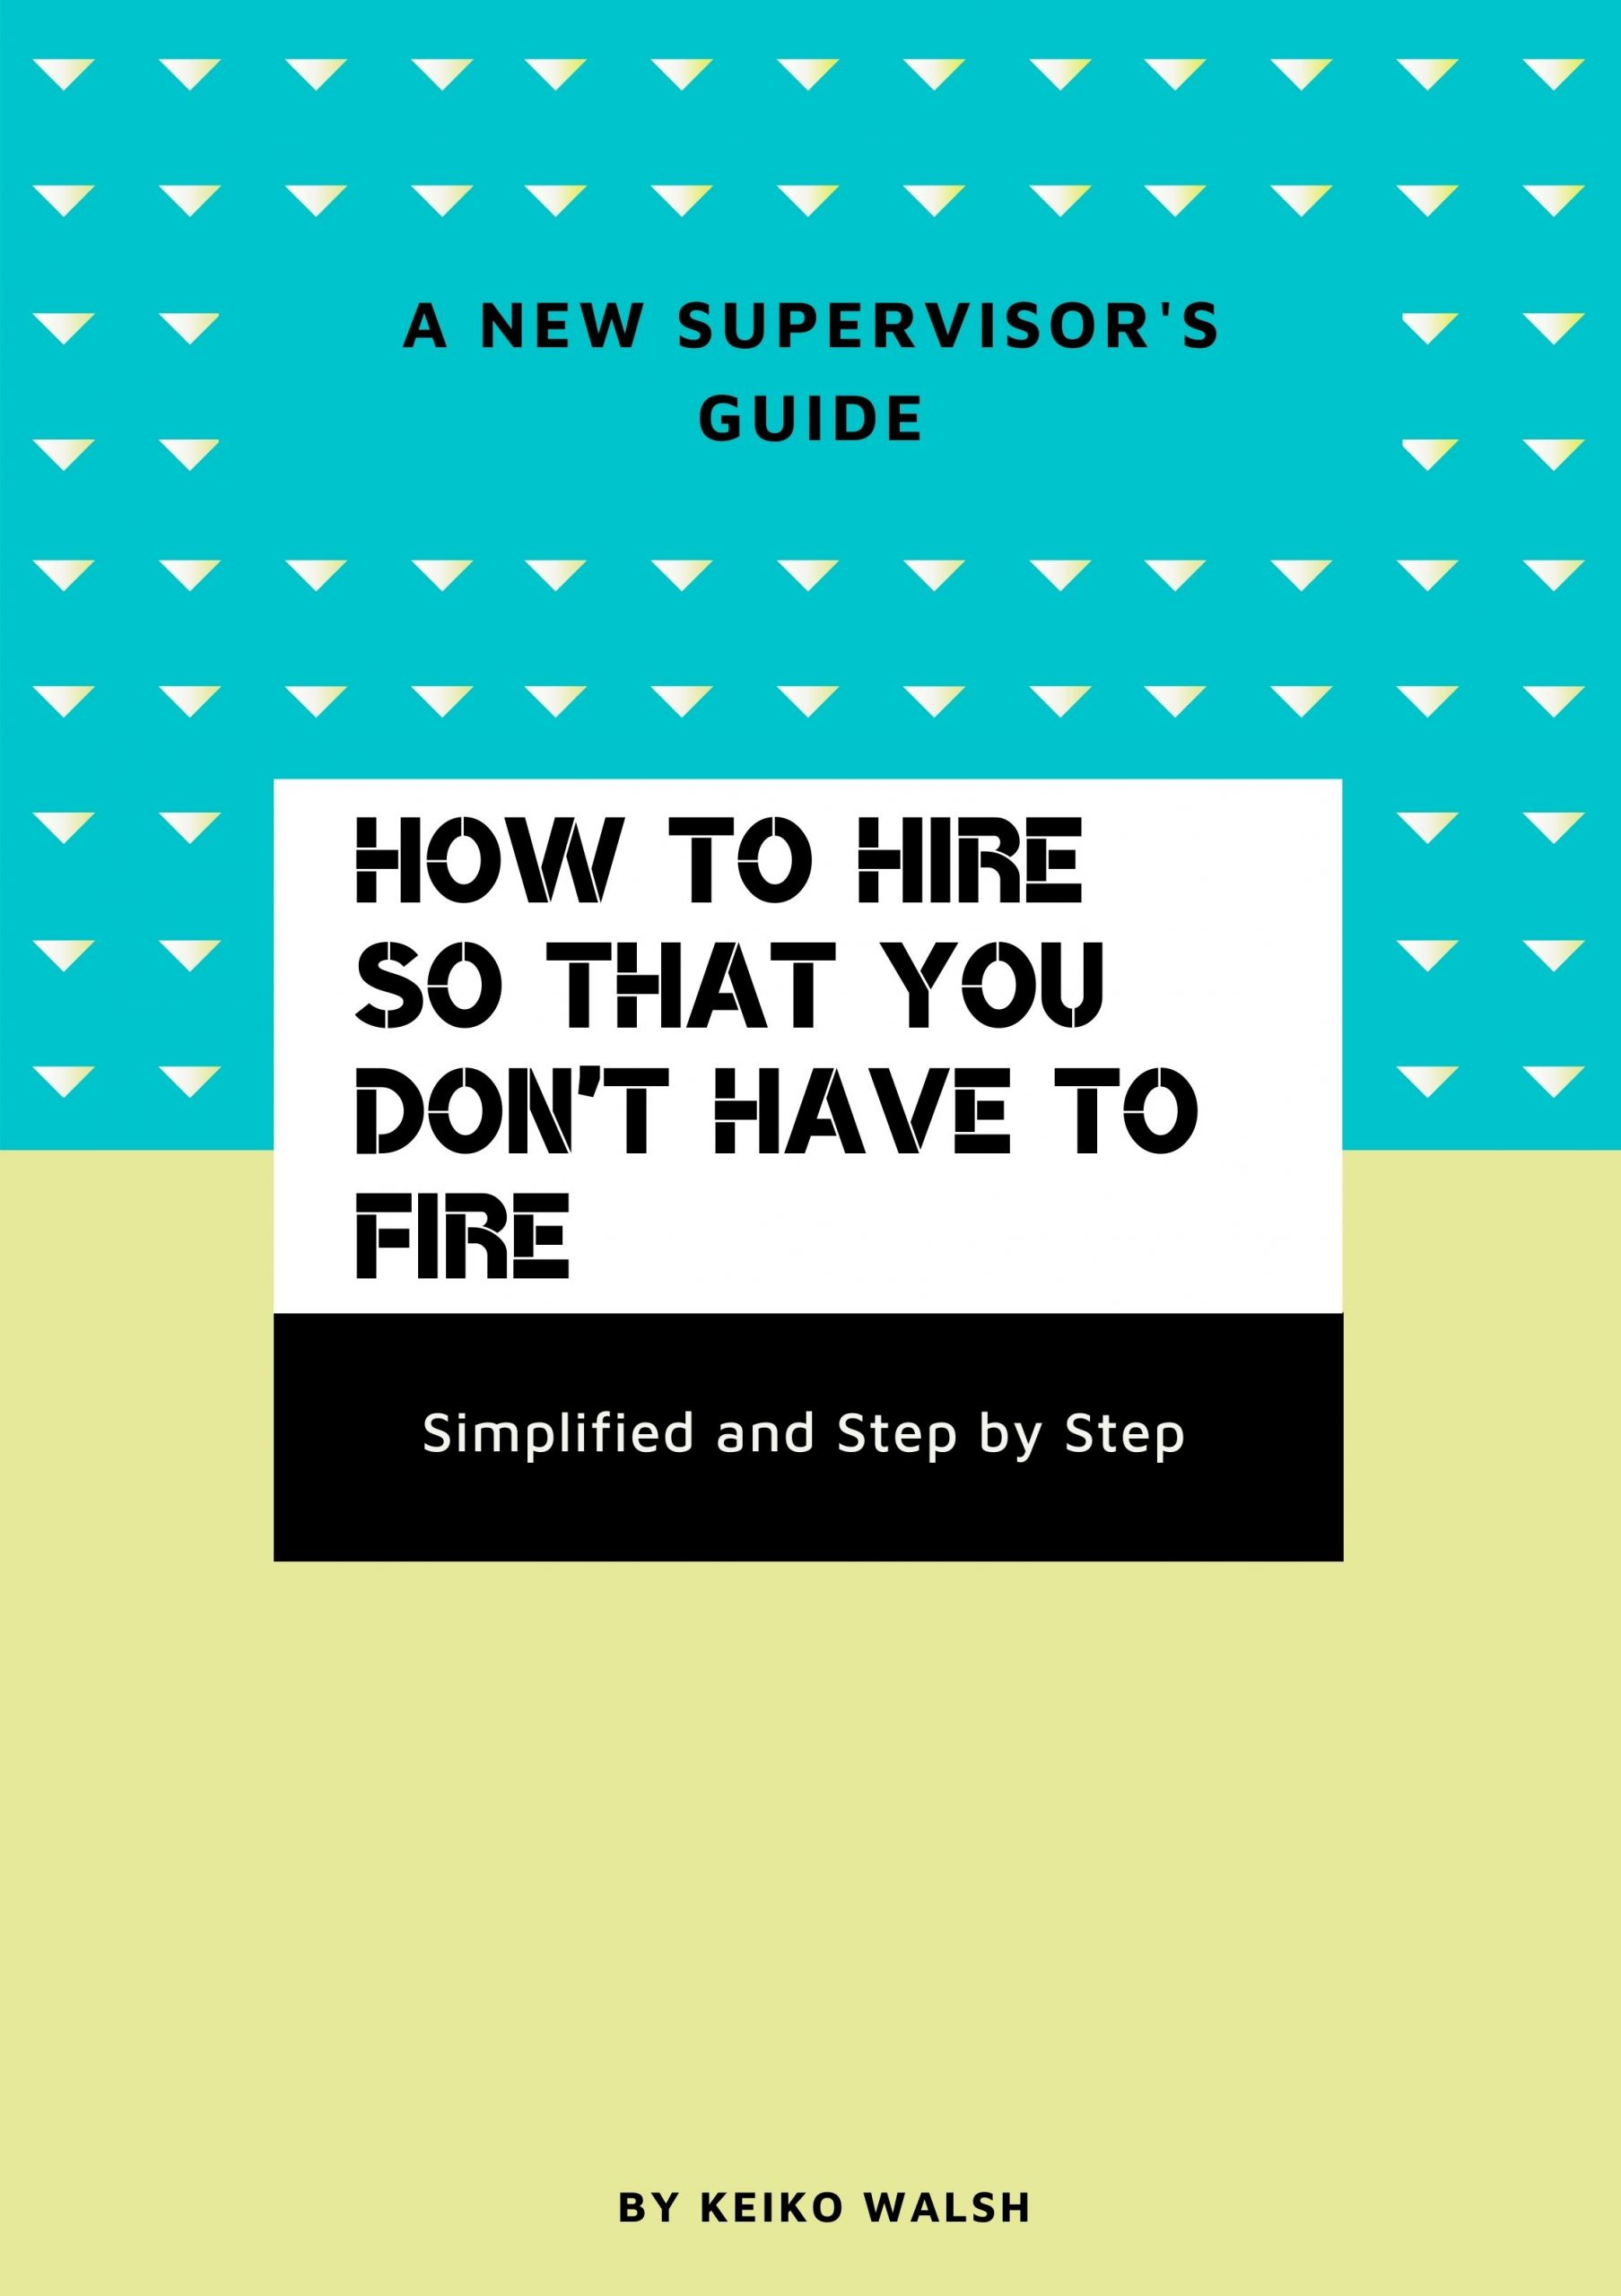 How To Hire - A new supervisor's guide